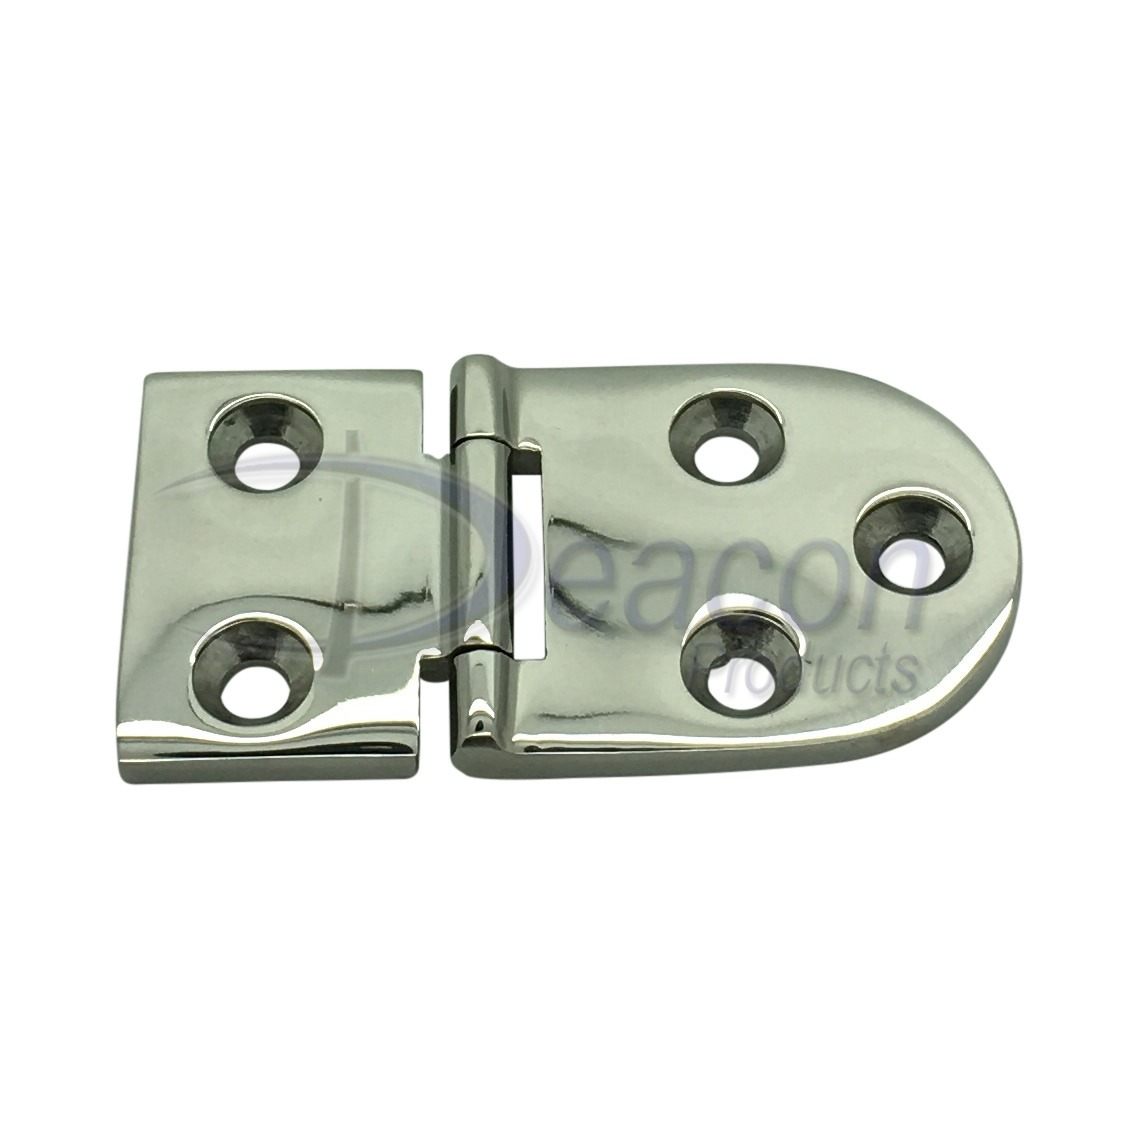 stainless-steel-small-oval-hinge